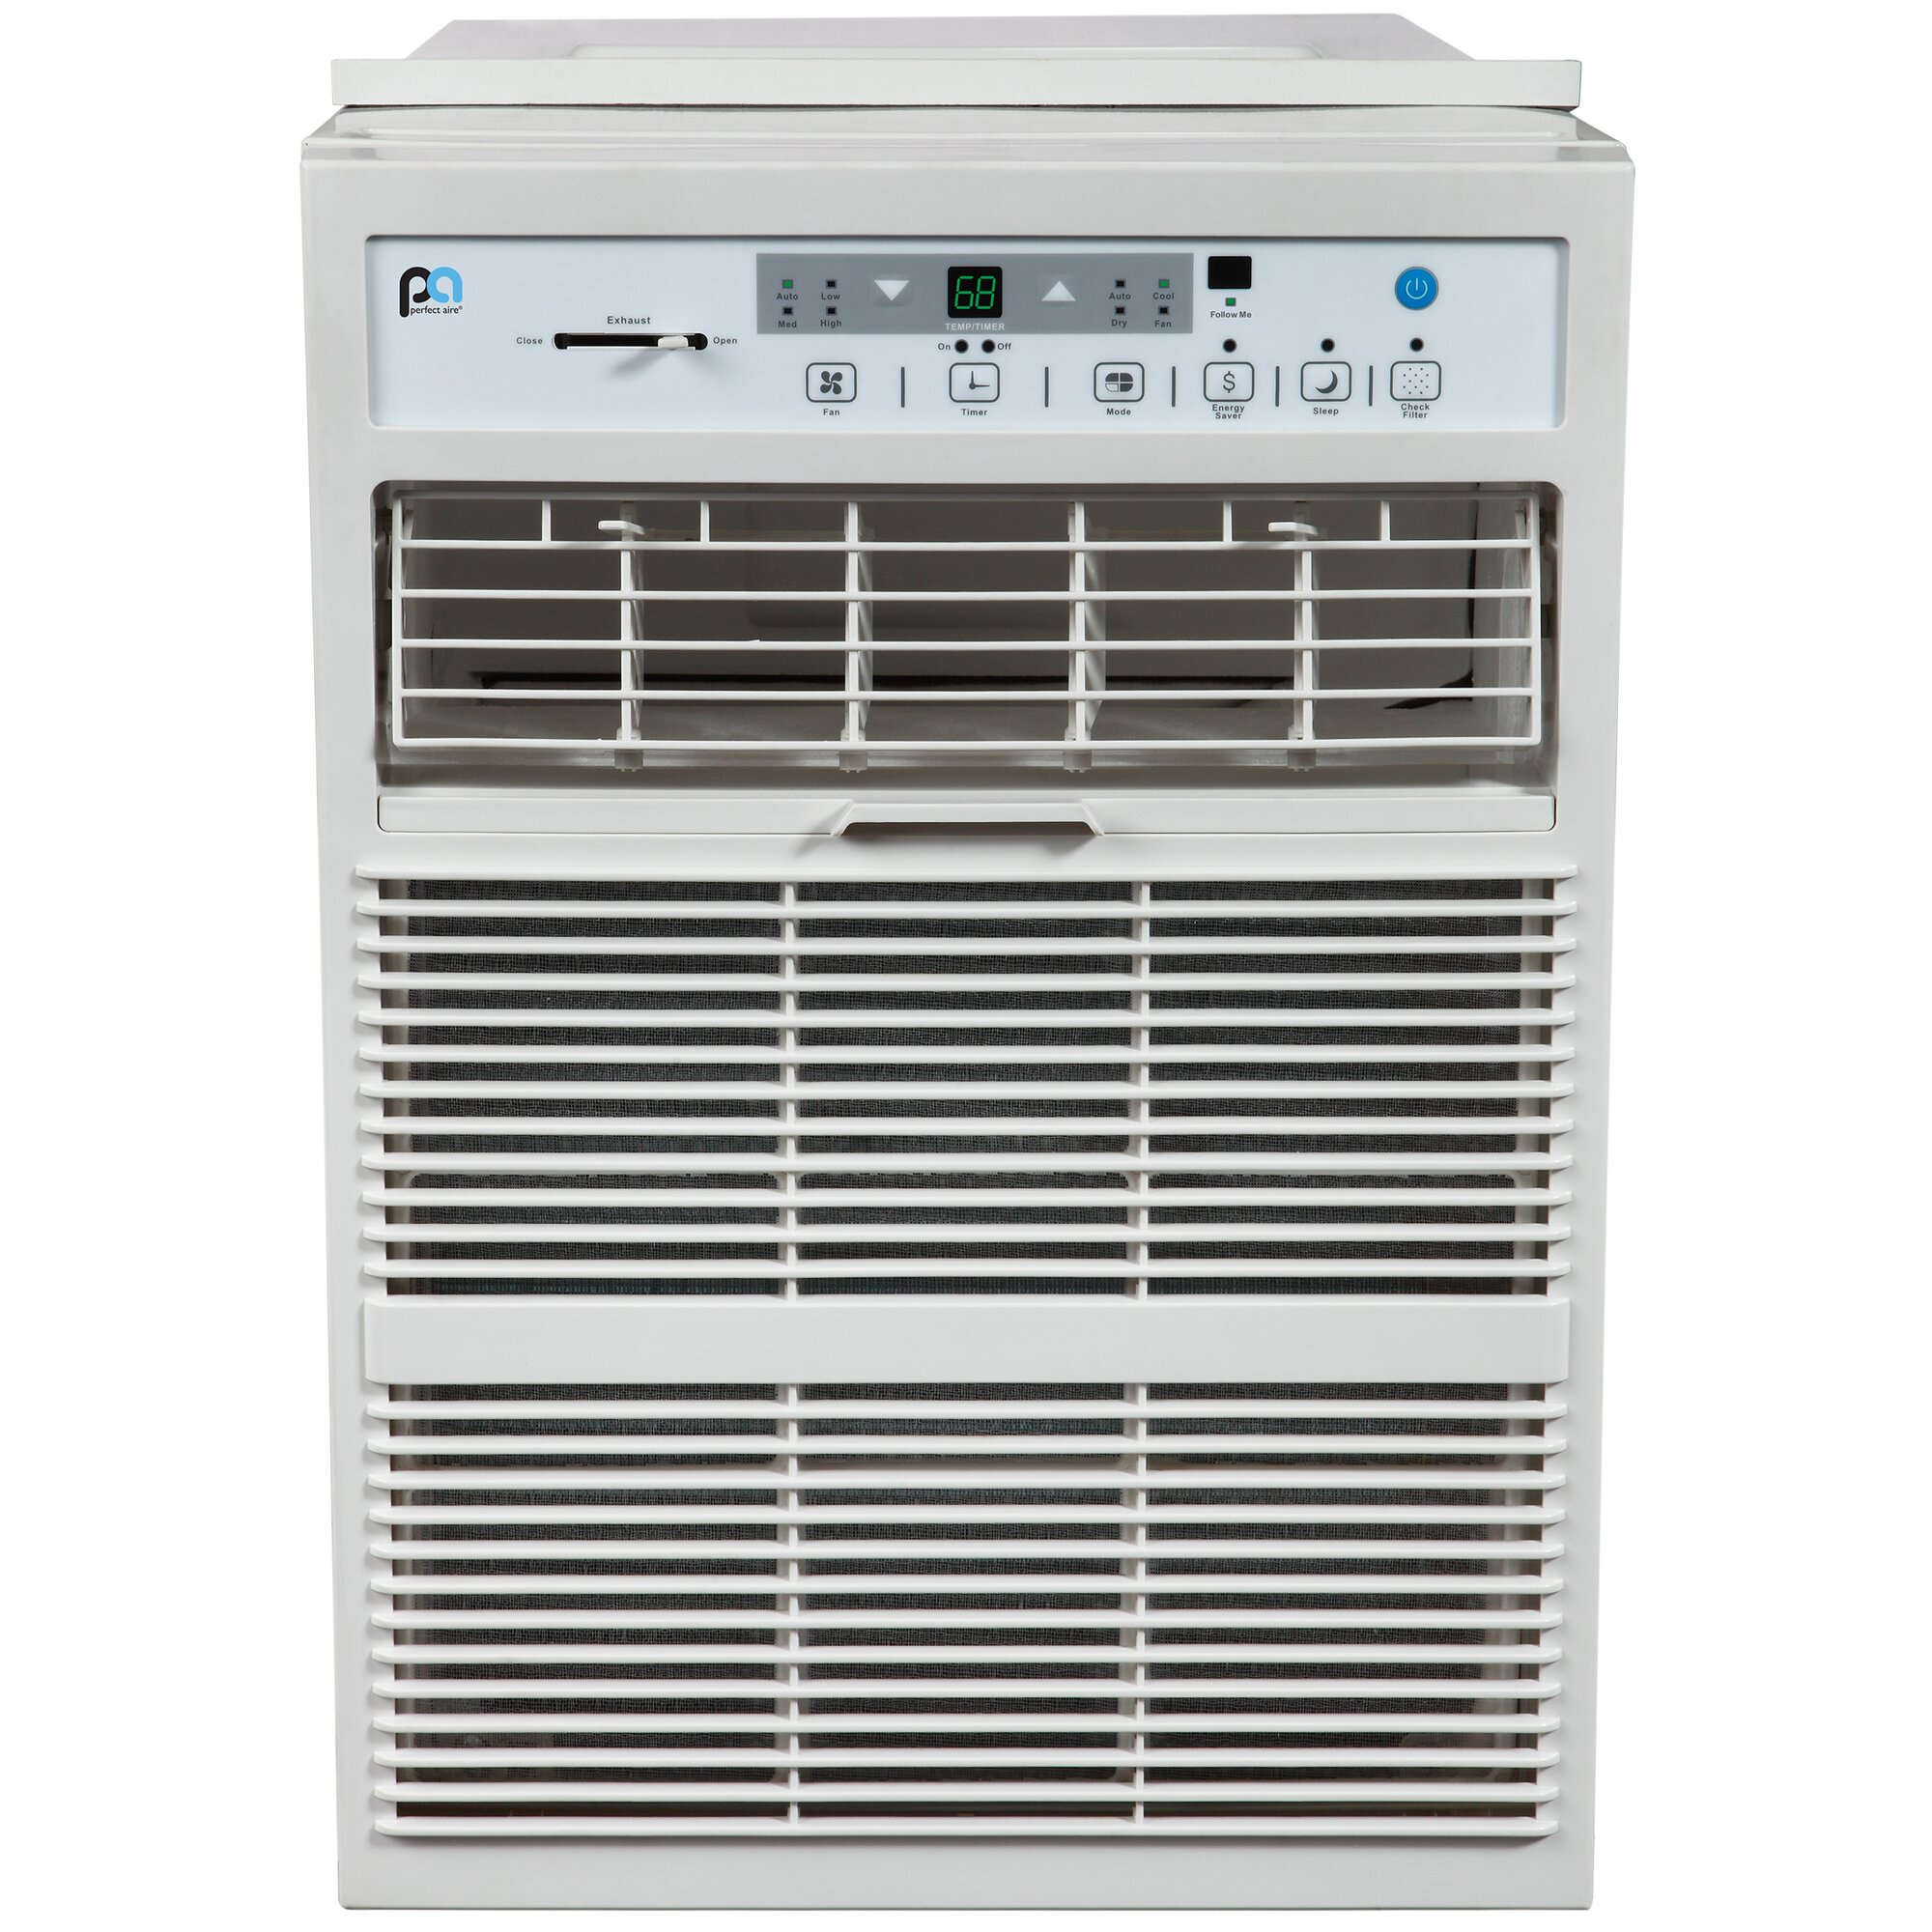 #576974 PerfectAire 10 000 BTU Energy Star Casement Air  Highly Rated 11889 Energy Star Rating For Air Conditioners wallpapers with 2000x2000 px on helpvideos.info - Air Conditioners, Air Coolers and more